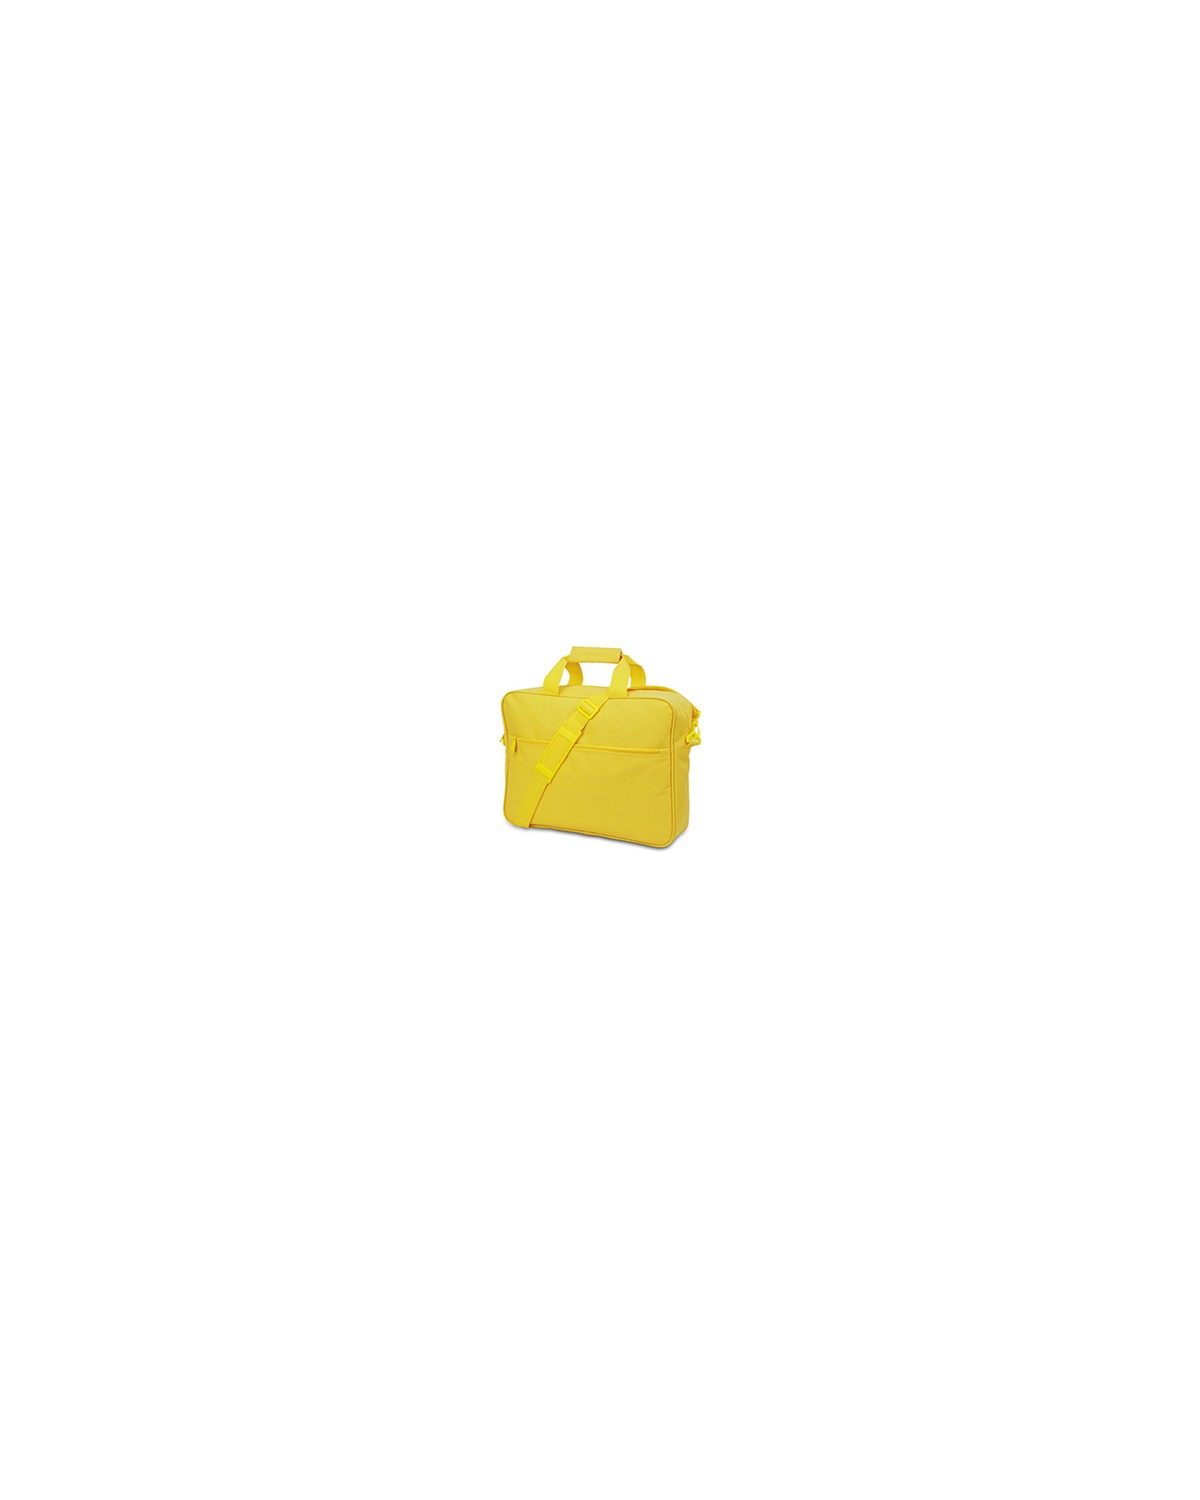 7703 Liberty Bags BRIGHT YELLOW